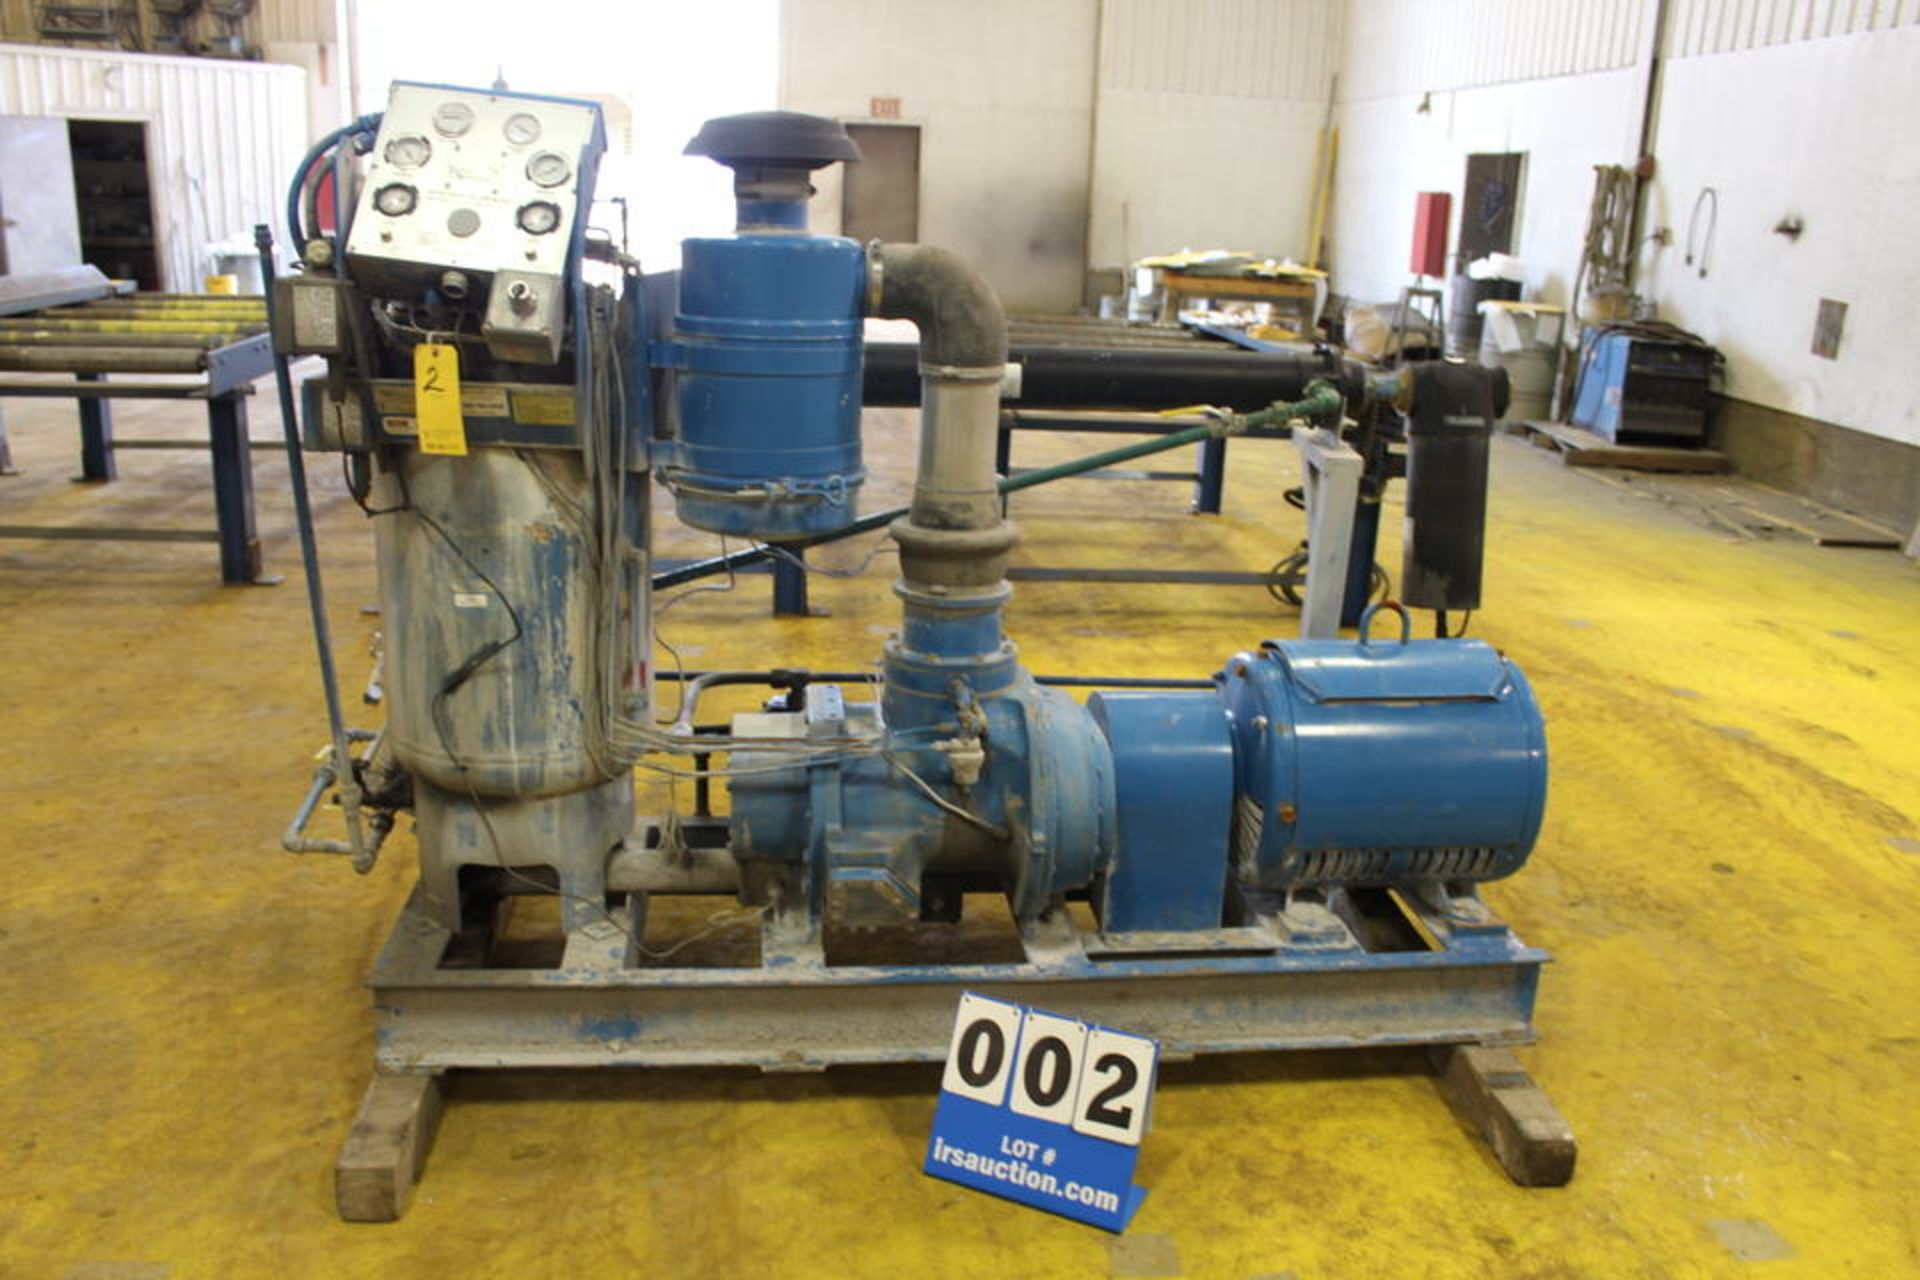 Lot 2 - QUINCY ROTARY SCREW AIR COMPRESSOR, MDL:QNW-360-D2, SKID MOUNTED, 75 HP (LOCATION: 4081 EASTSIDE